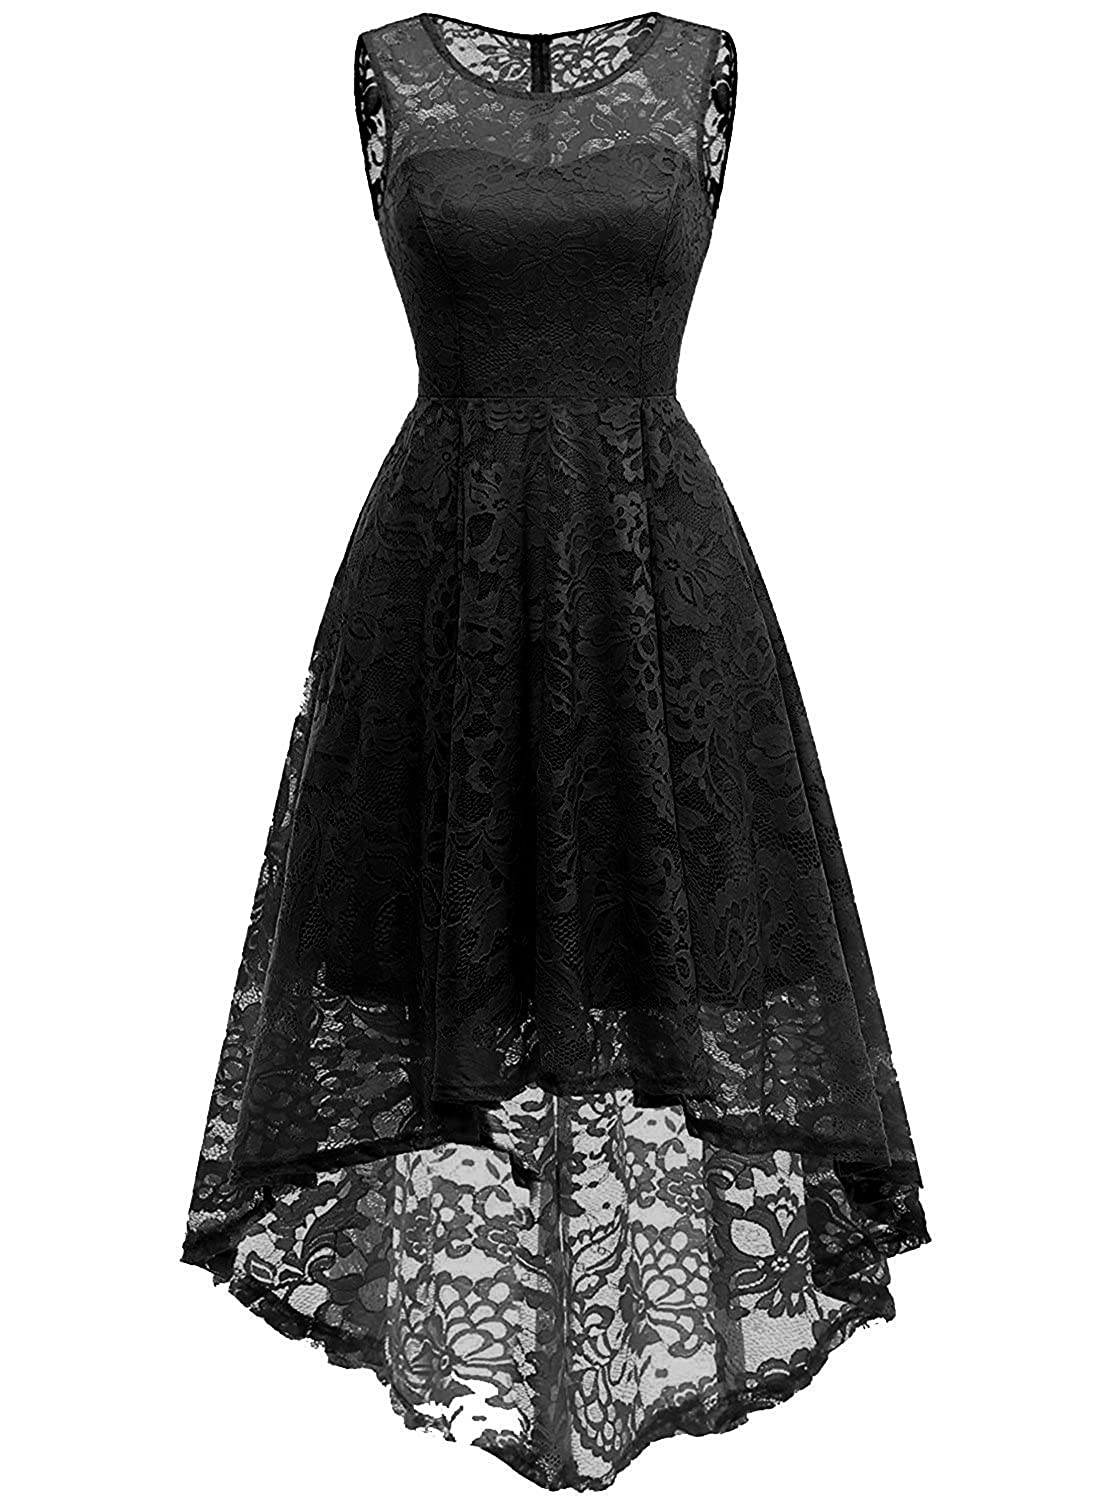 01780ead9800 Women's 1950s Vintage A line Floral Lace Sleeveless Hi-Lo Cocktail Formal Swing  Dress at Amazon Women's Clothing store: